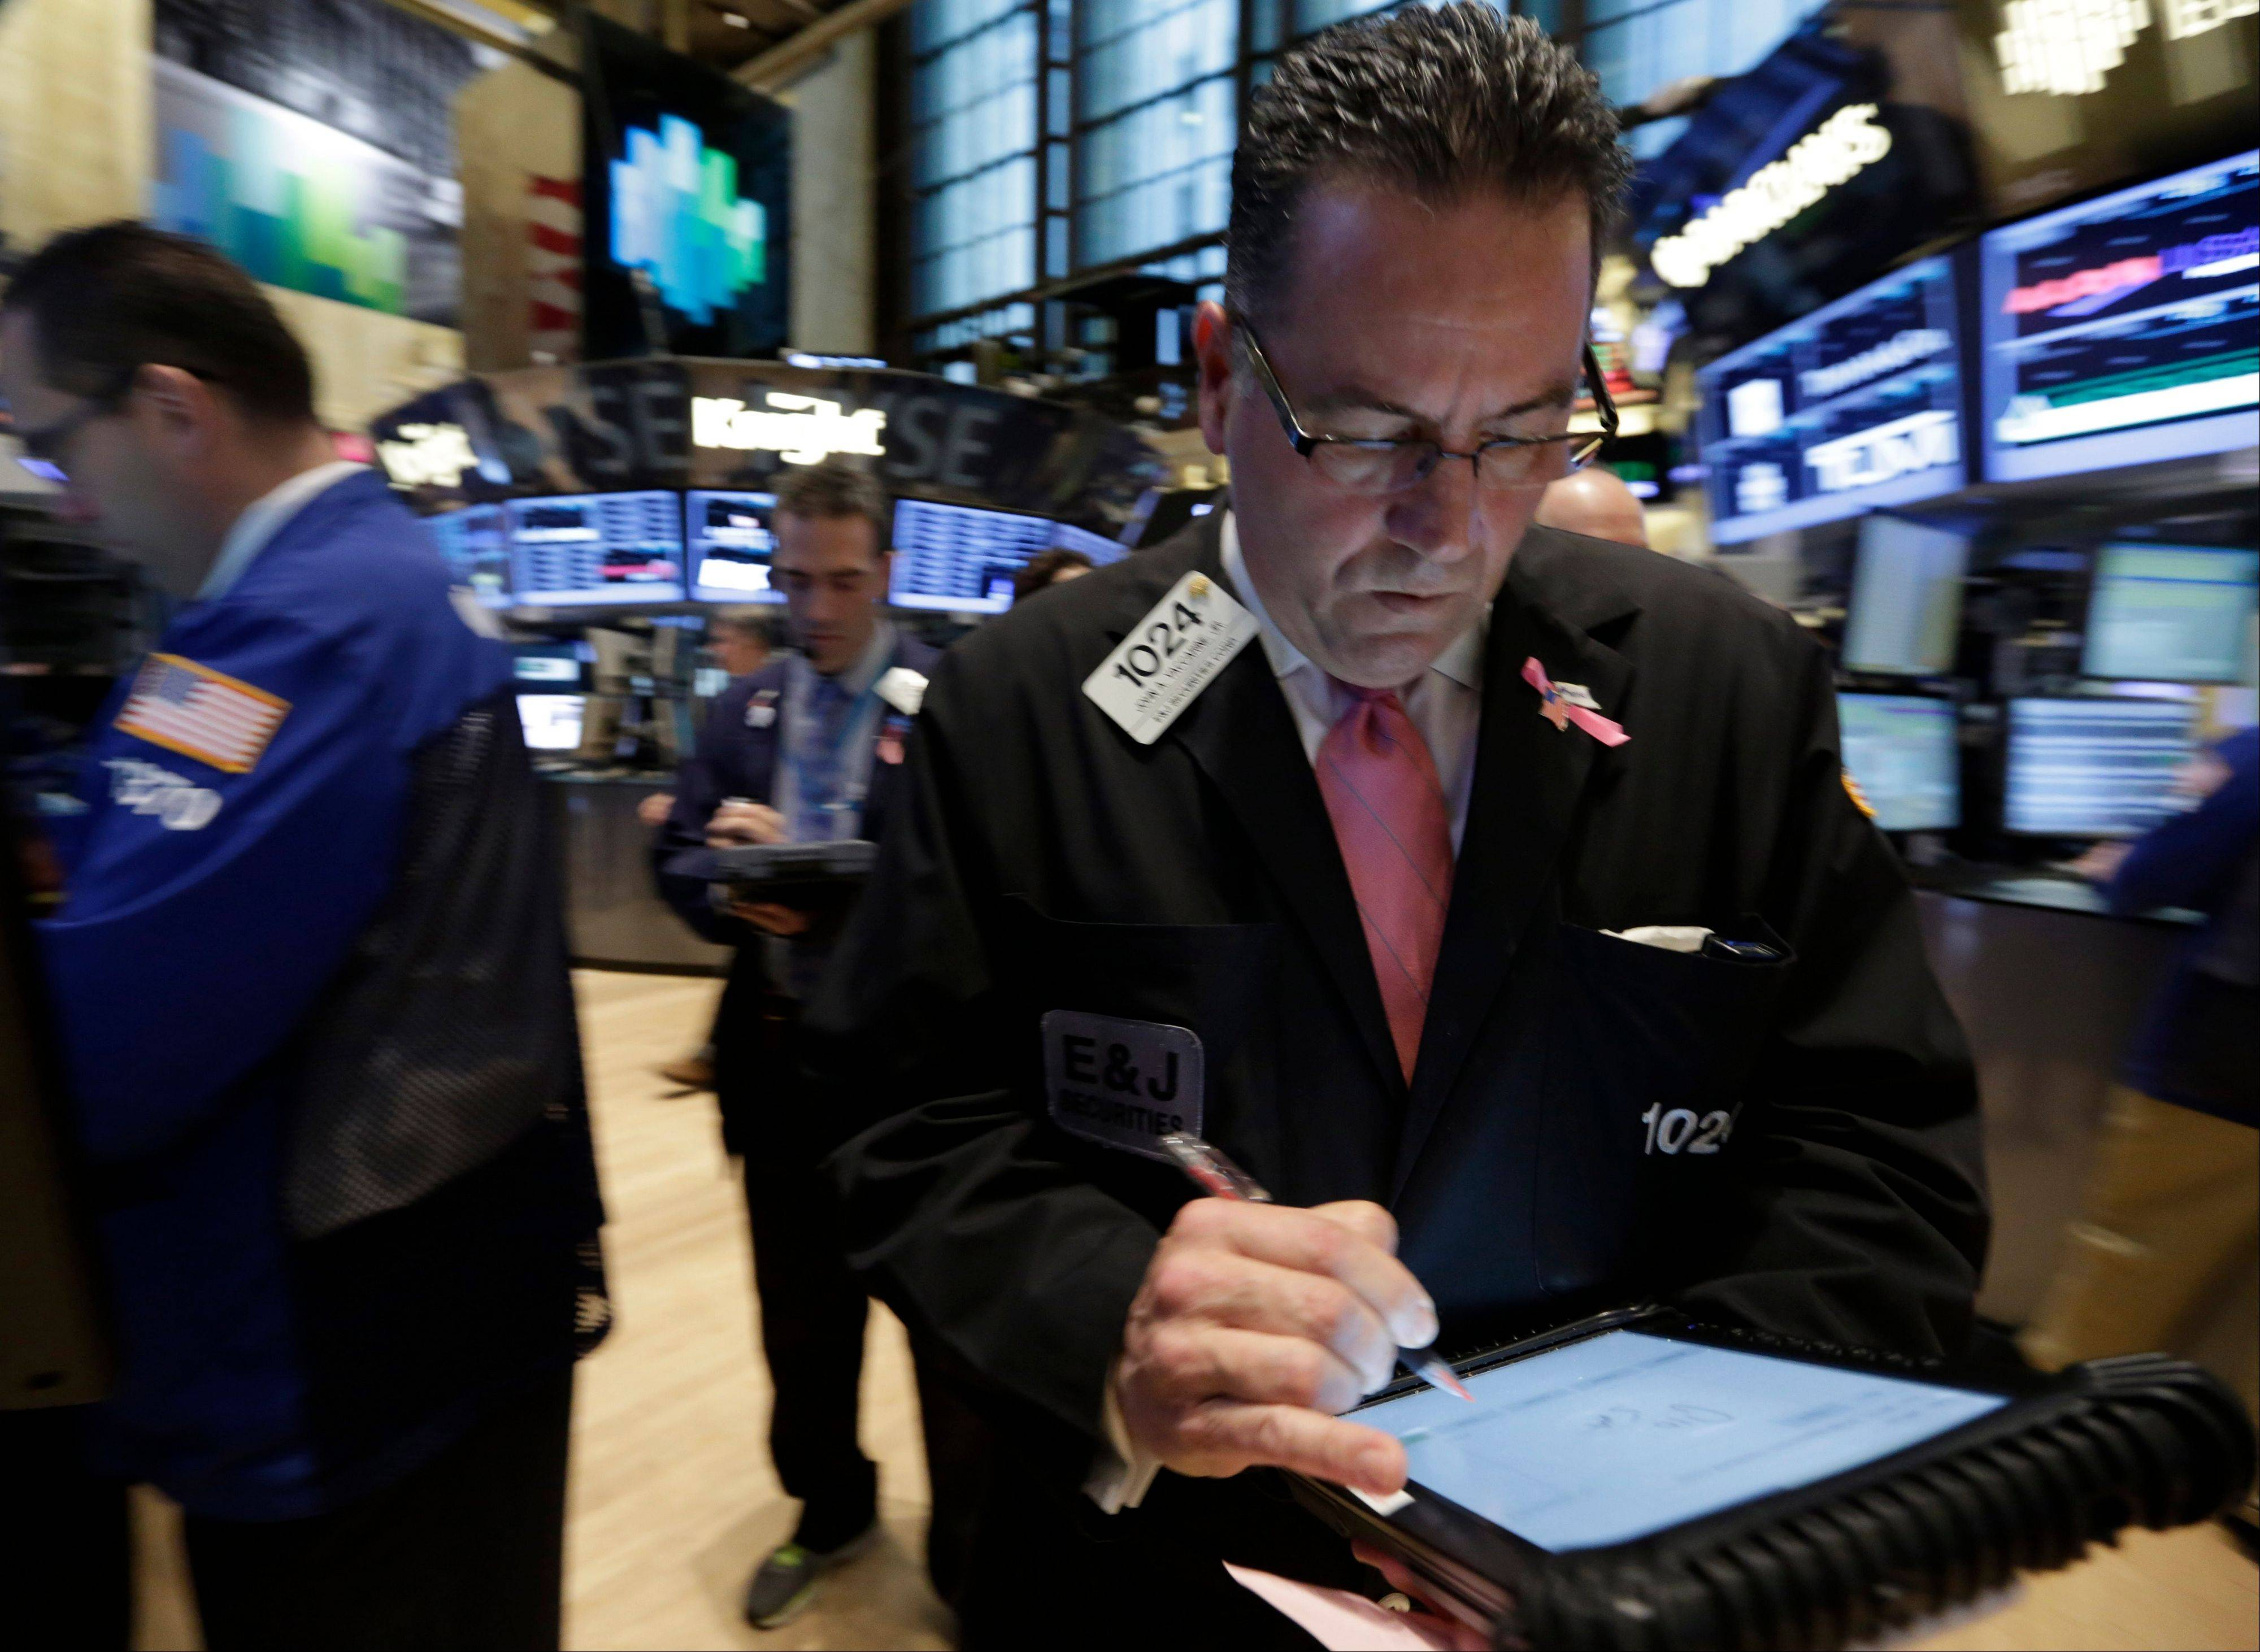 U.S. stocks rose, giving the Standard & Poor�s 500 Index its first back-to-back gain in more than three weeks, on optimism over earnings and as commodities gained amid a report showing China�s inflation slowed.